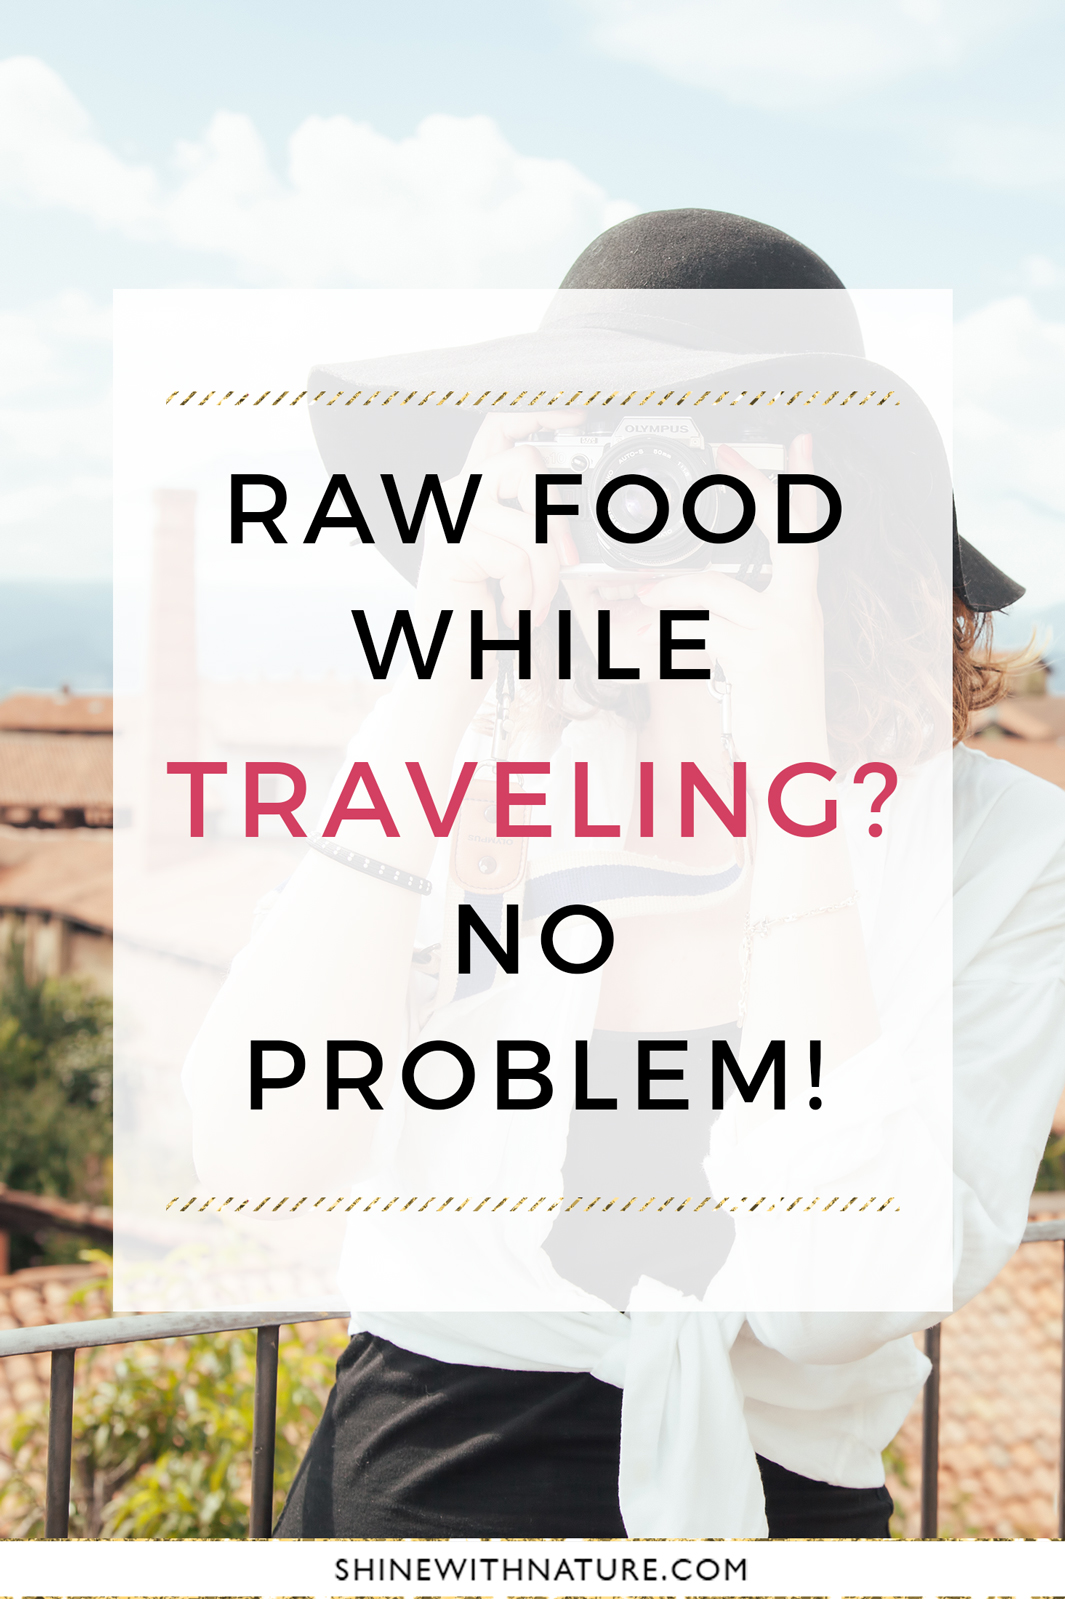 Raw Food While Traveling? No problem!